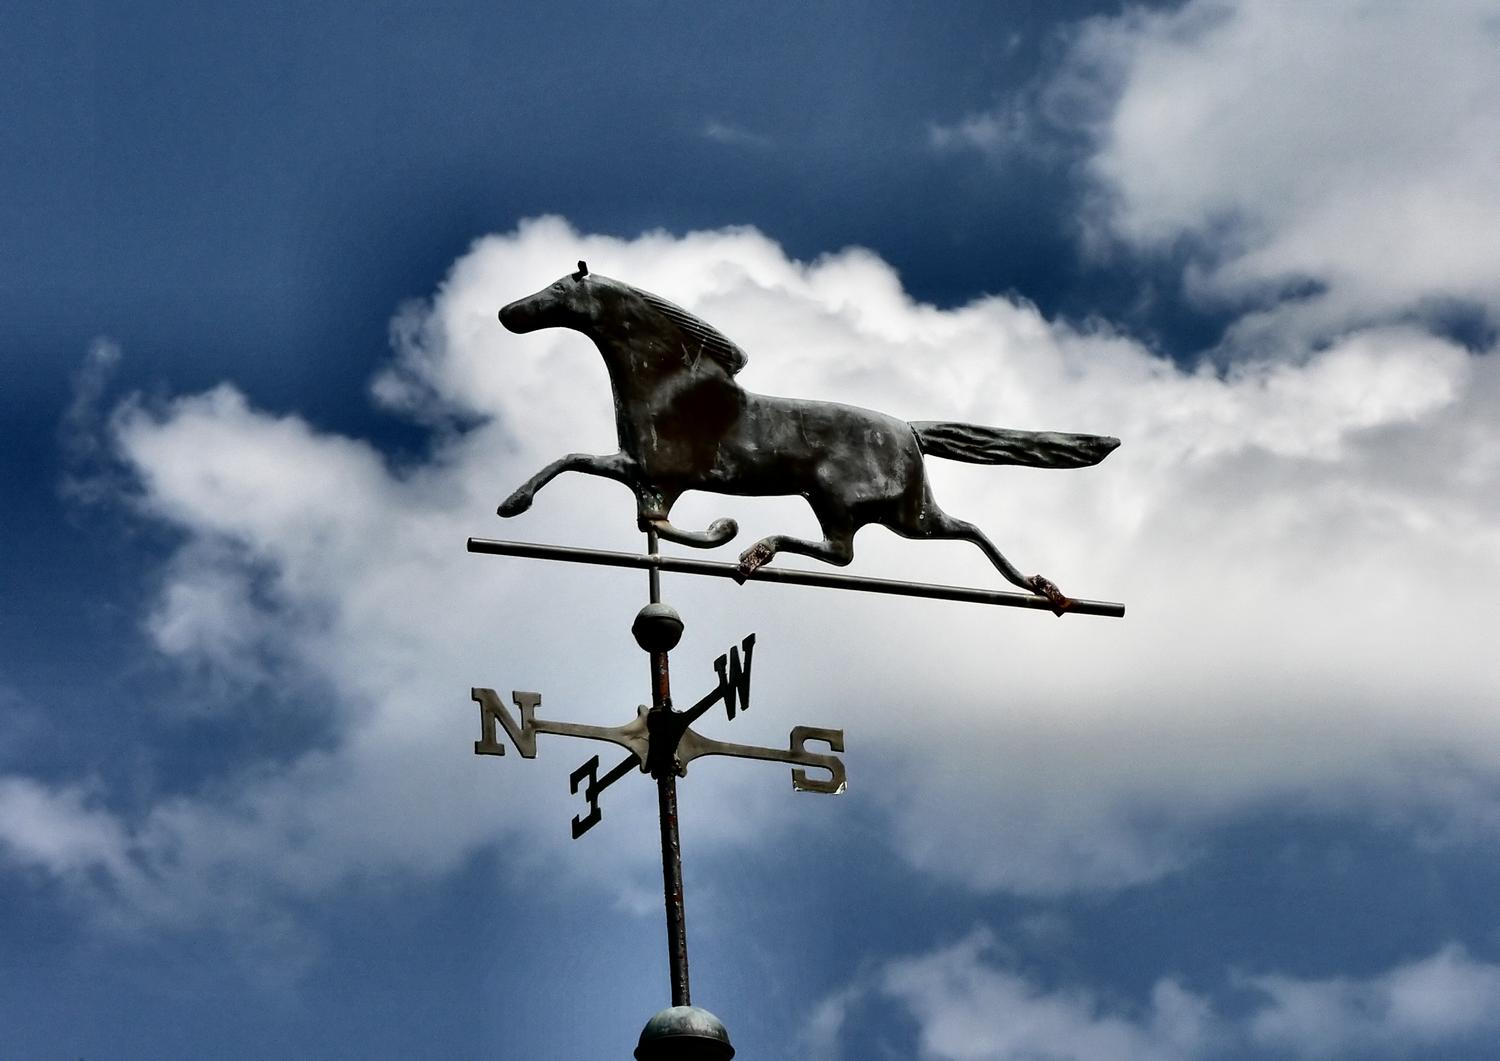 - Horse over my head - #1 - Techno-Impressionist Museum - Techno-Impressionism - art - beautiful - photo photography picture - by Tony Karp